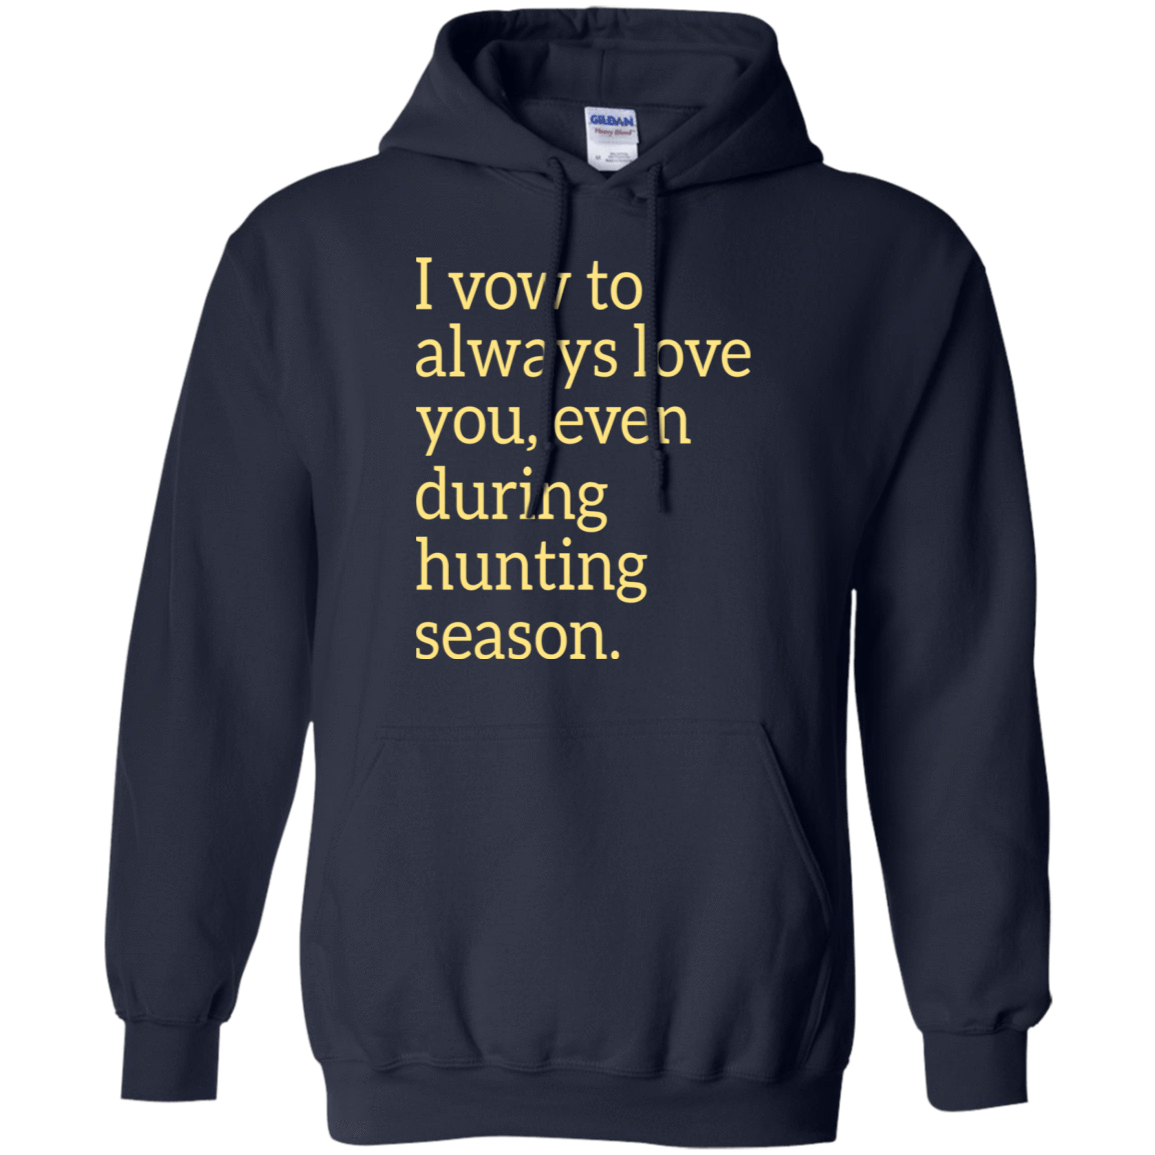 I Vow To Always Love You Even During Hunting Season 541-4742-73426321-23135 - Tee Ript